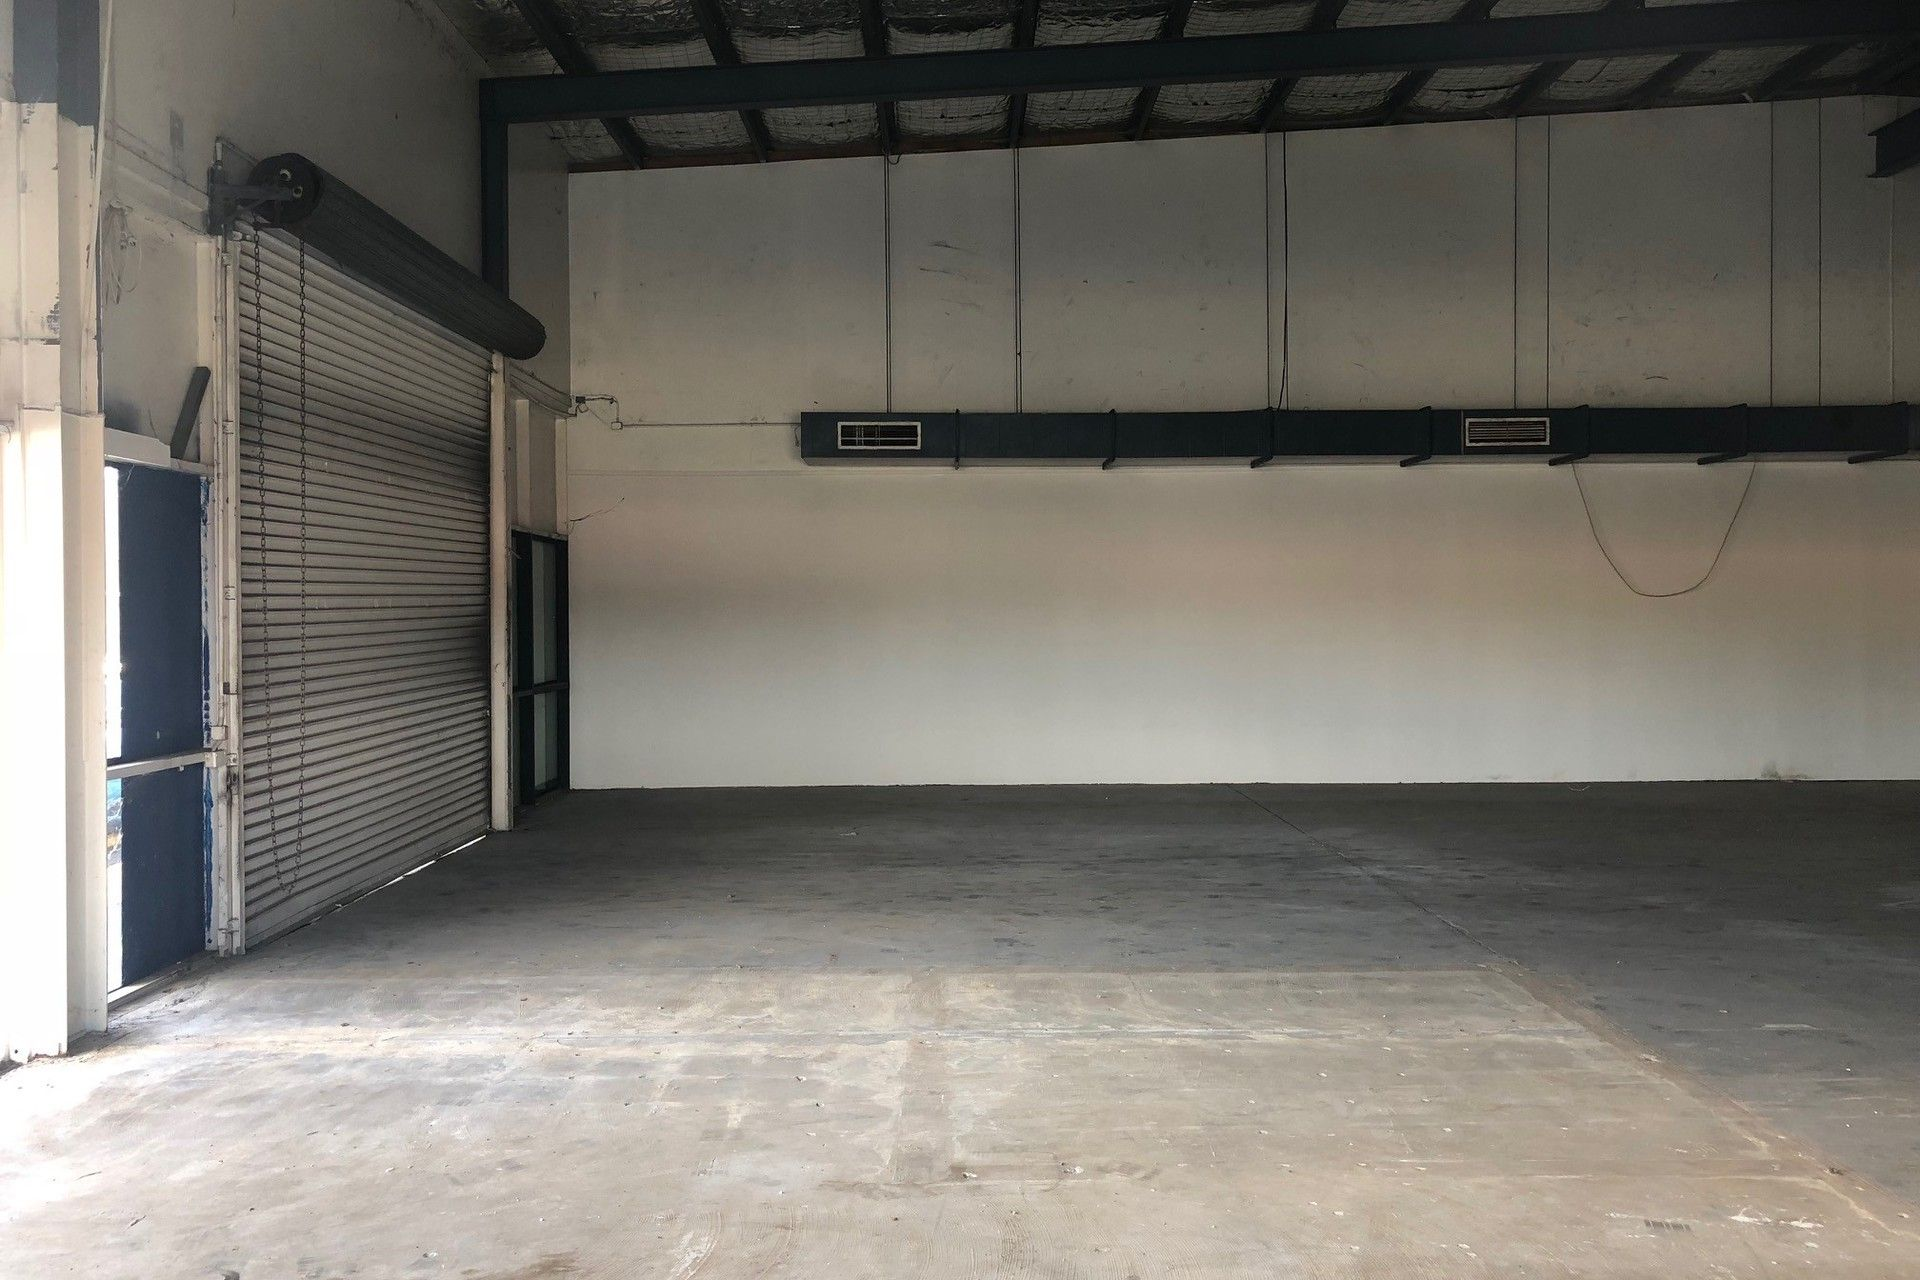 LOCATION, GREASE TRAP, DRIVE THRU POTENTIAL: WHAT ELSE DO YOU NEED?